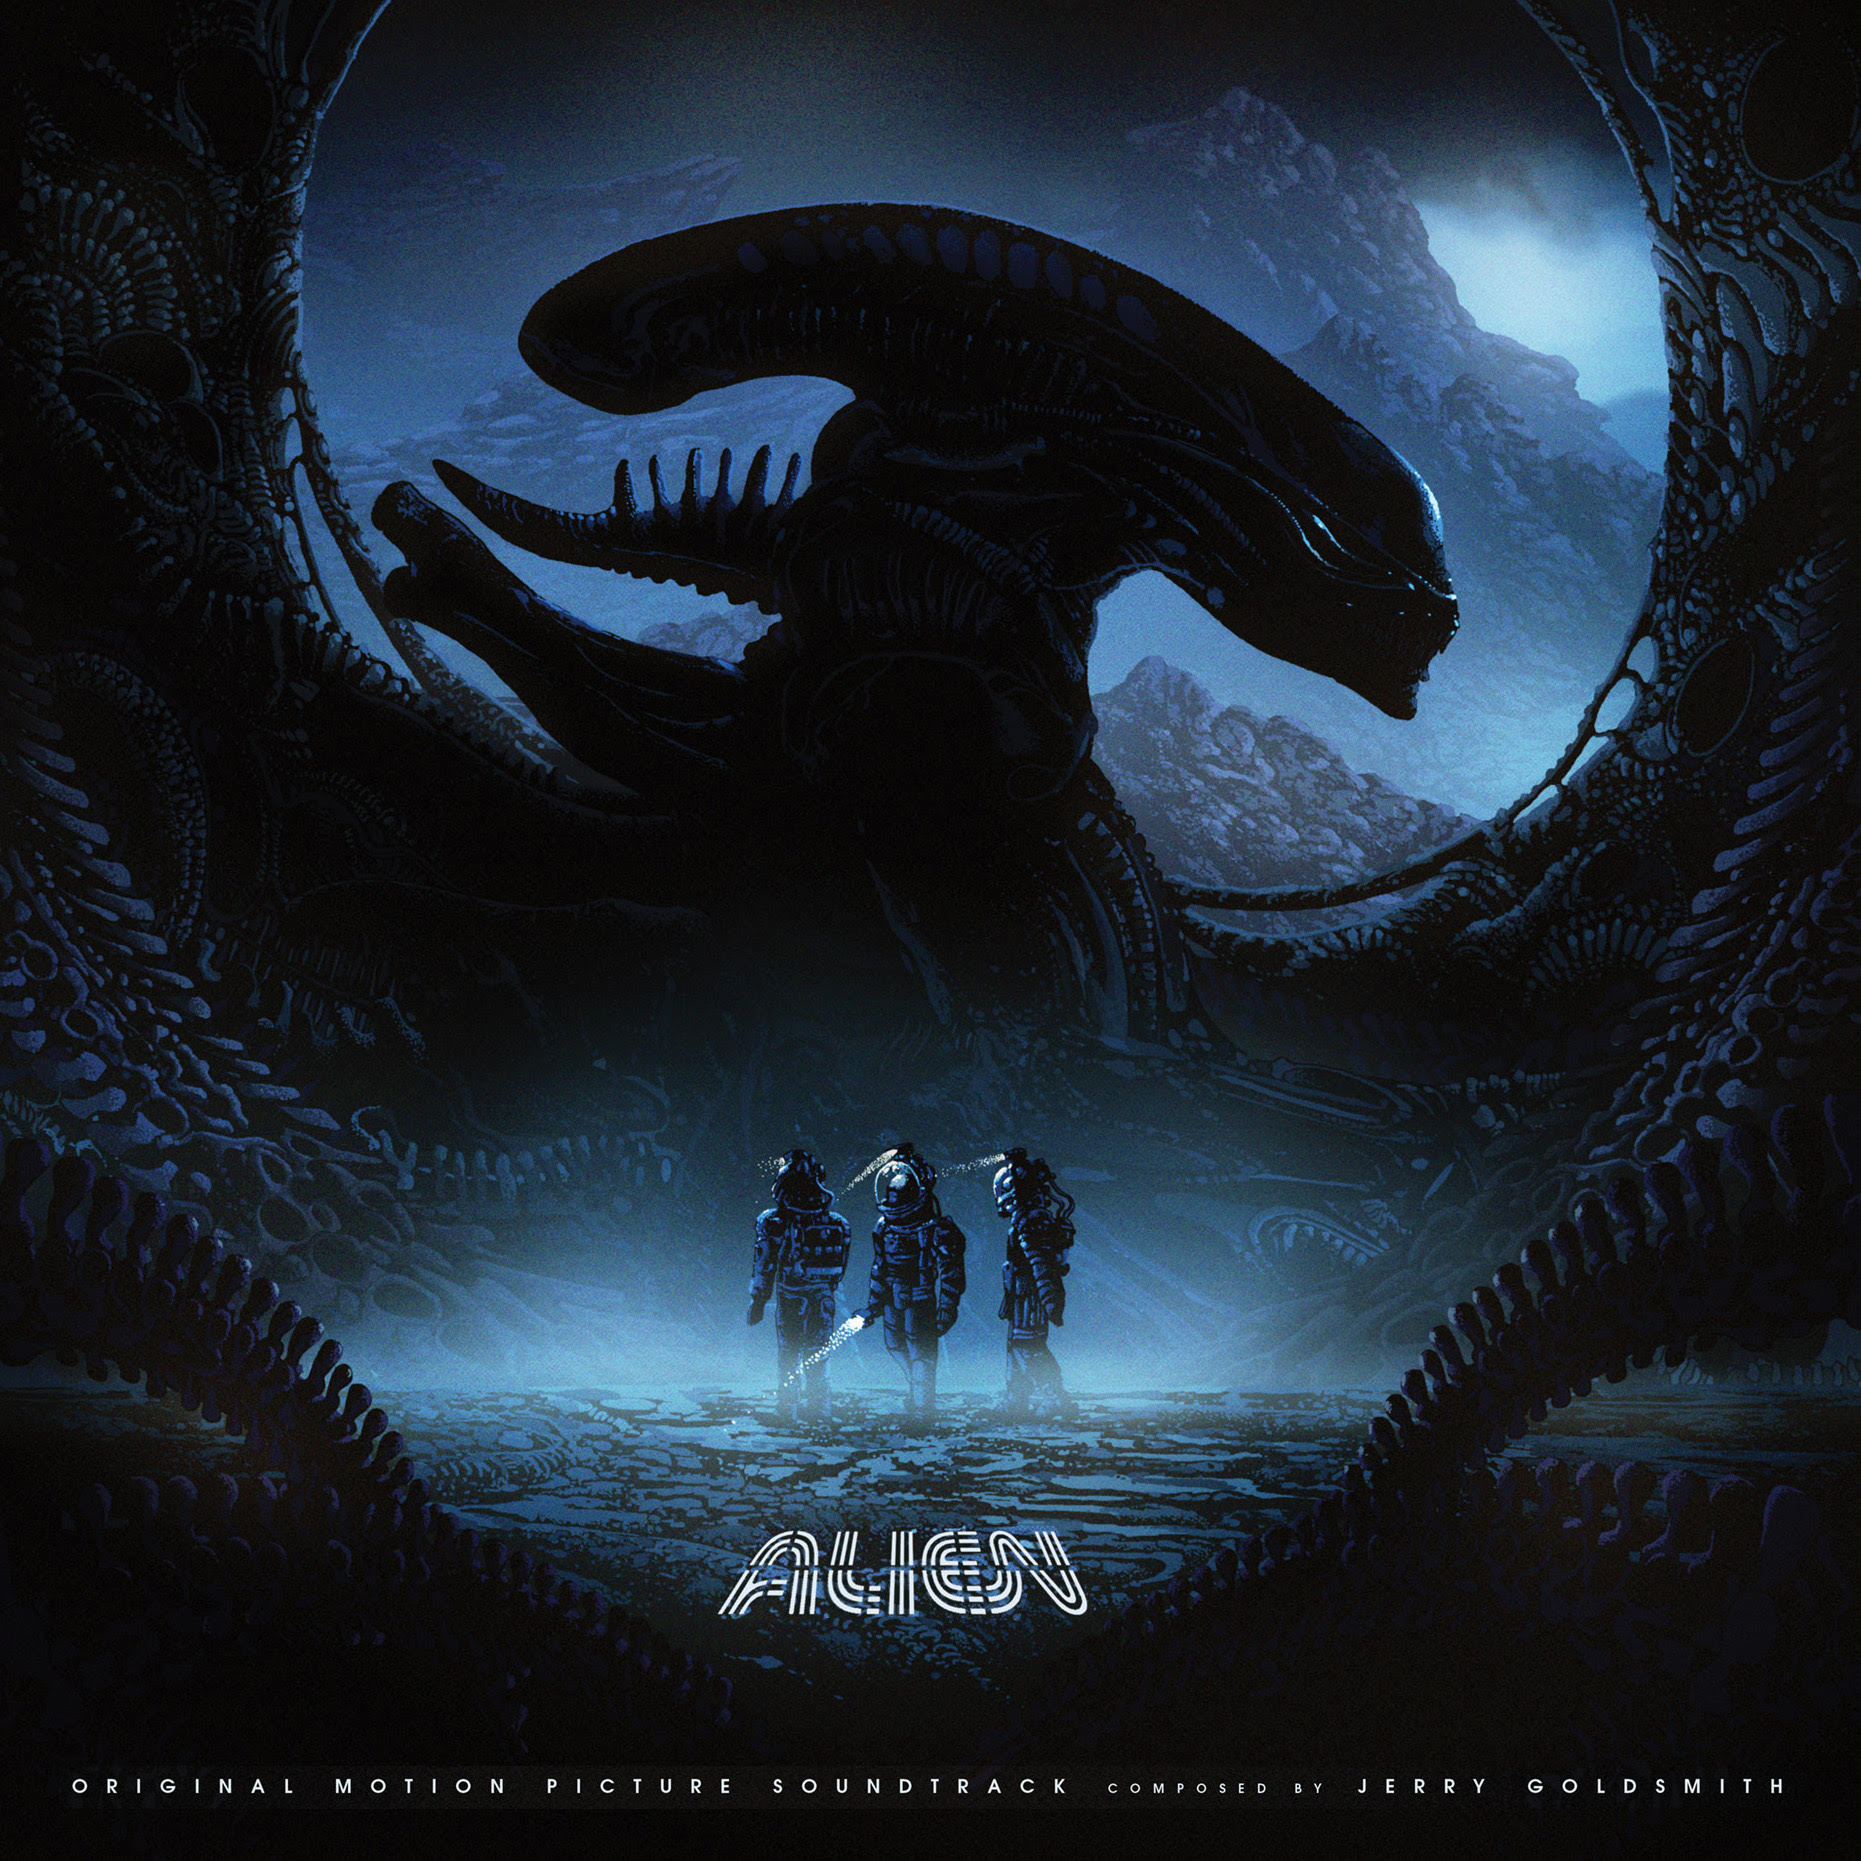 Alien 1979 Original Soundtrack Light In The Attic Records